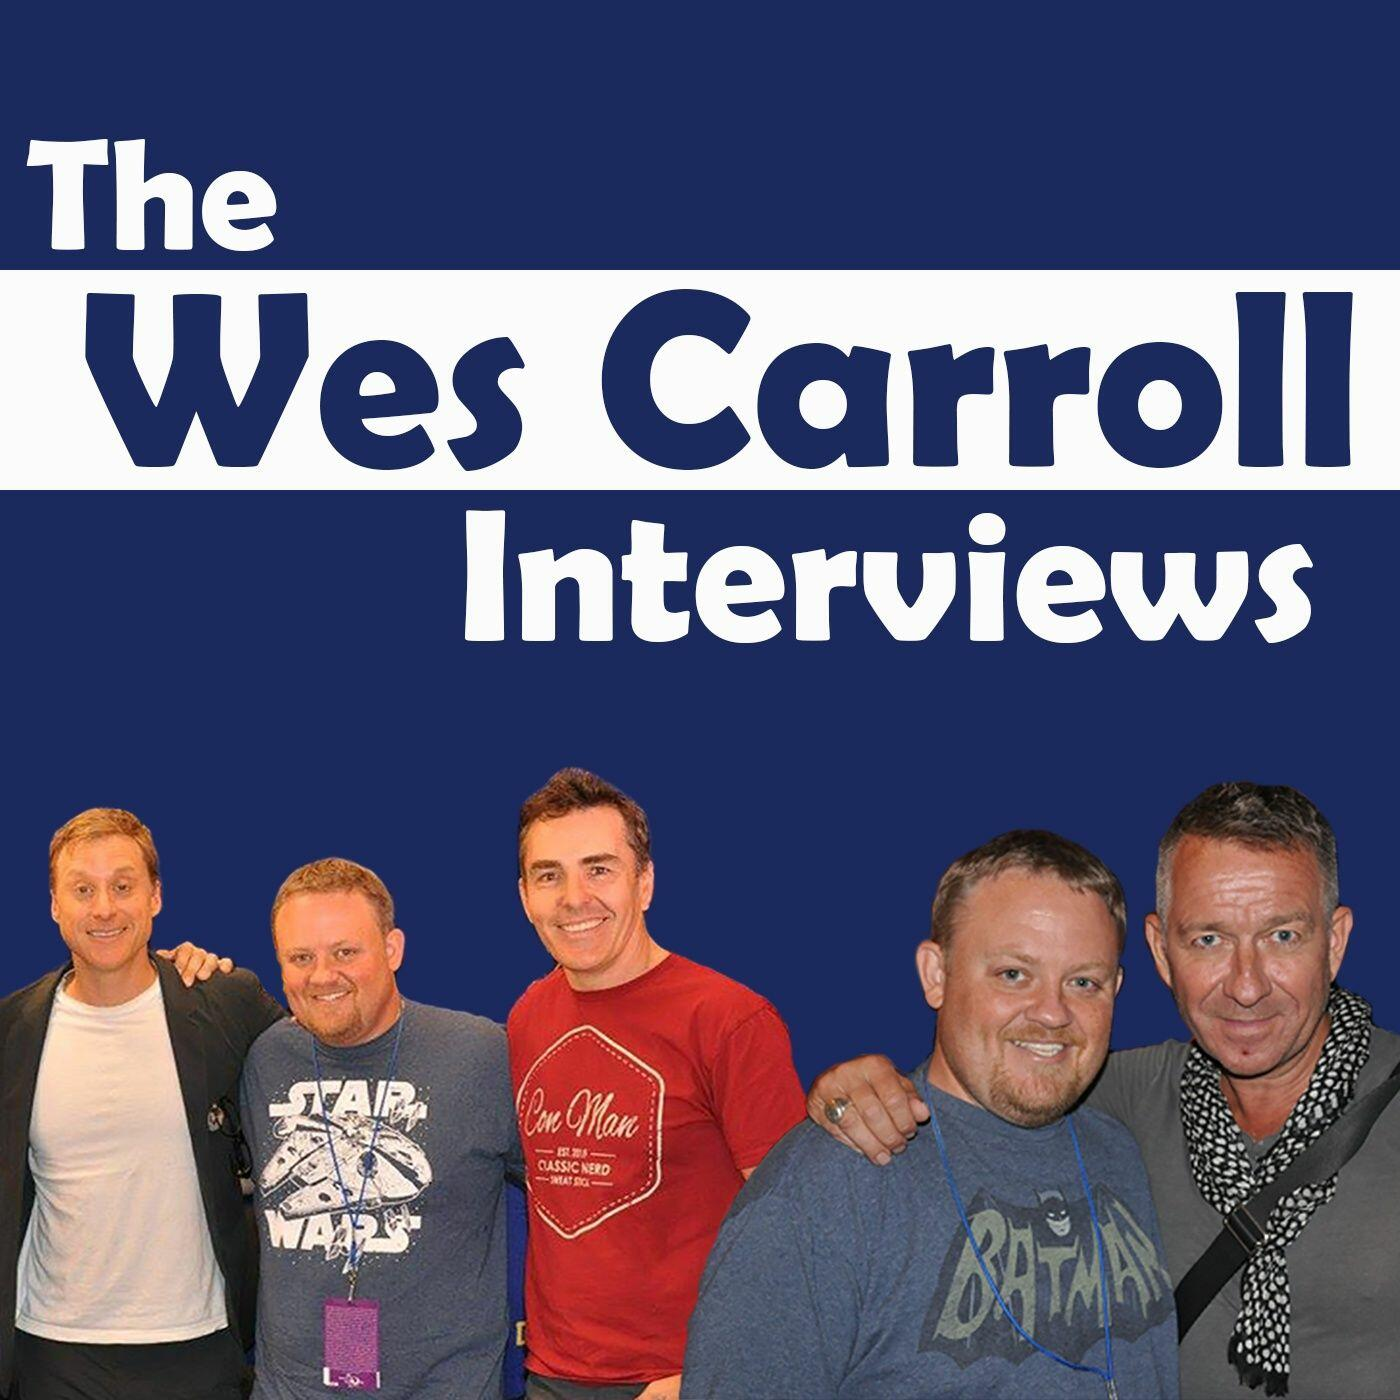 Listen to the The Wes Carroll Interviews Episode - In Conversation with the Teenage Mutant Ninja Turtles on iHeartRadio | iHeartRadio